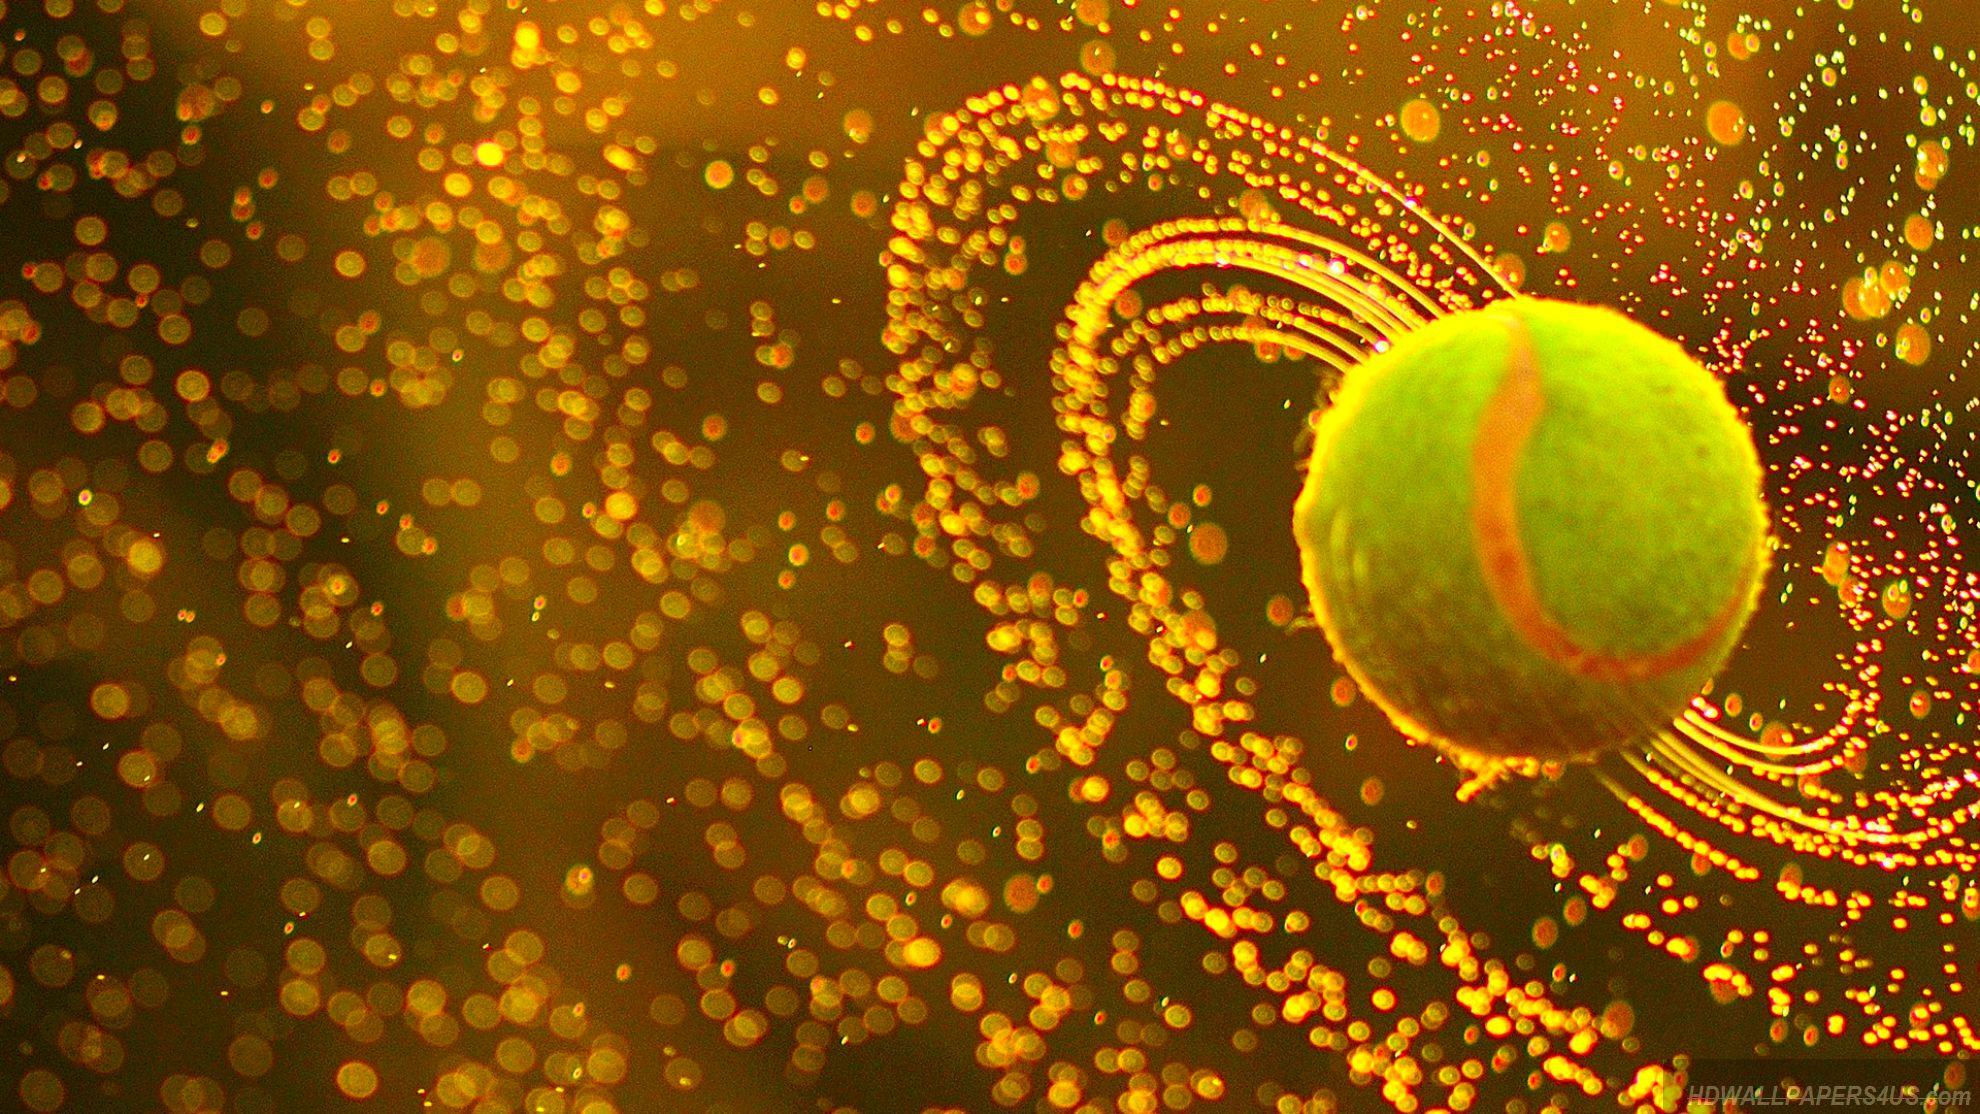 Tennis Ball Wallpapers Top Free Tennis Ball Backgrounds Wallpaperaccess